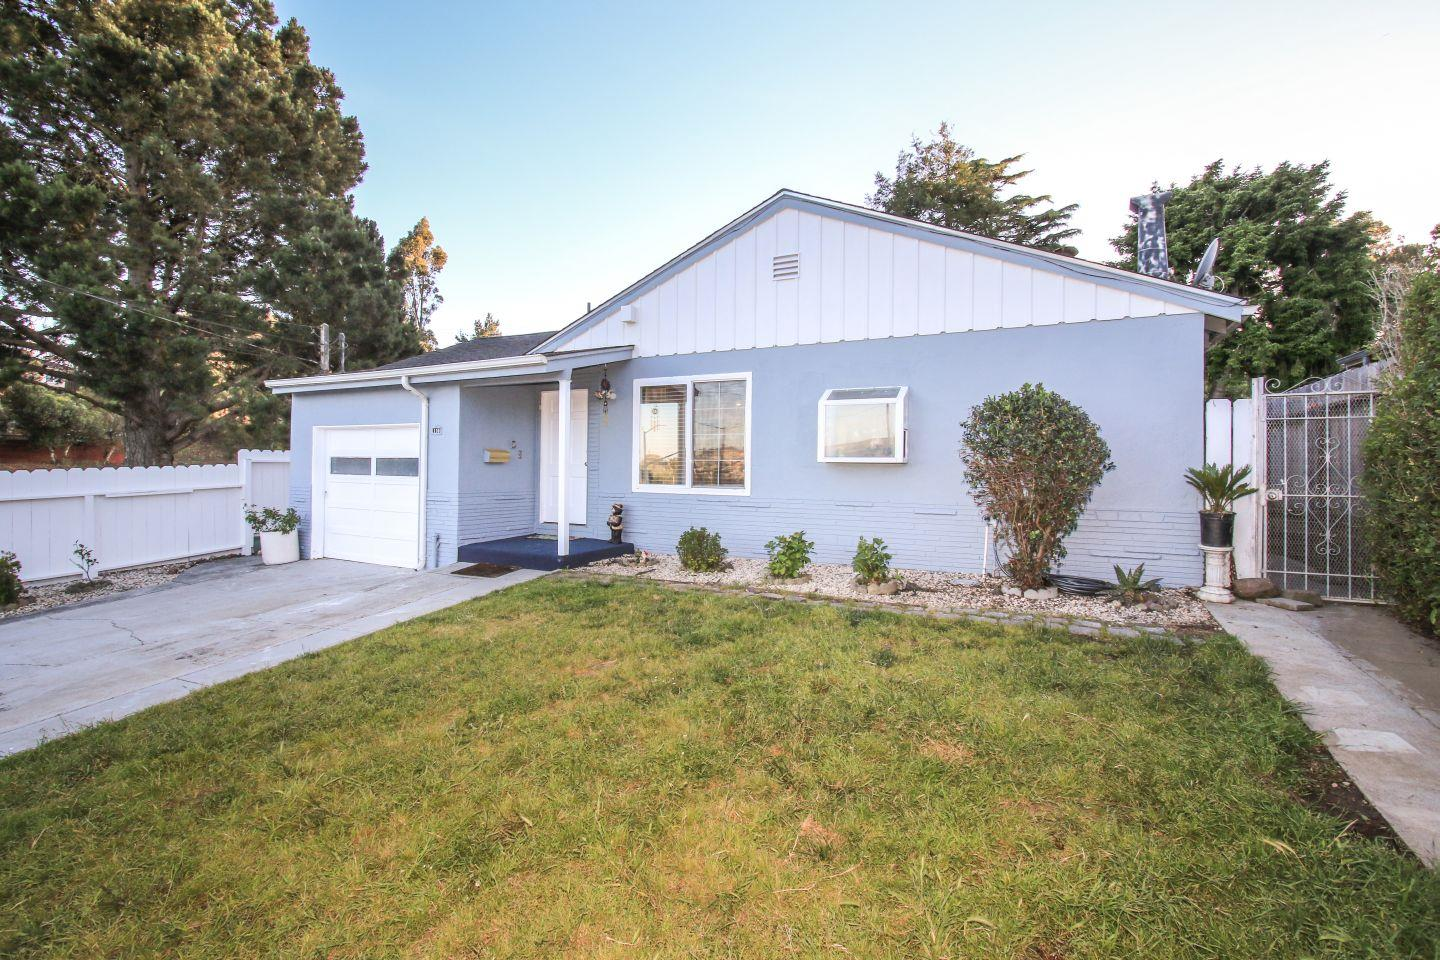 Additional photo for property listing at 110 Longford Drive  South San Francisco, California 94080 United States